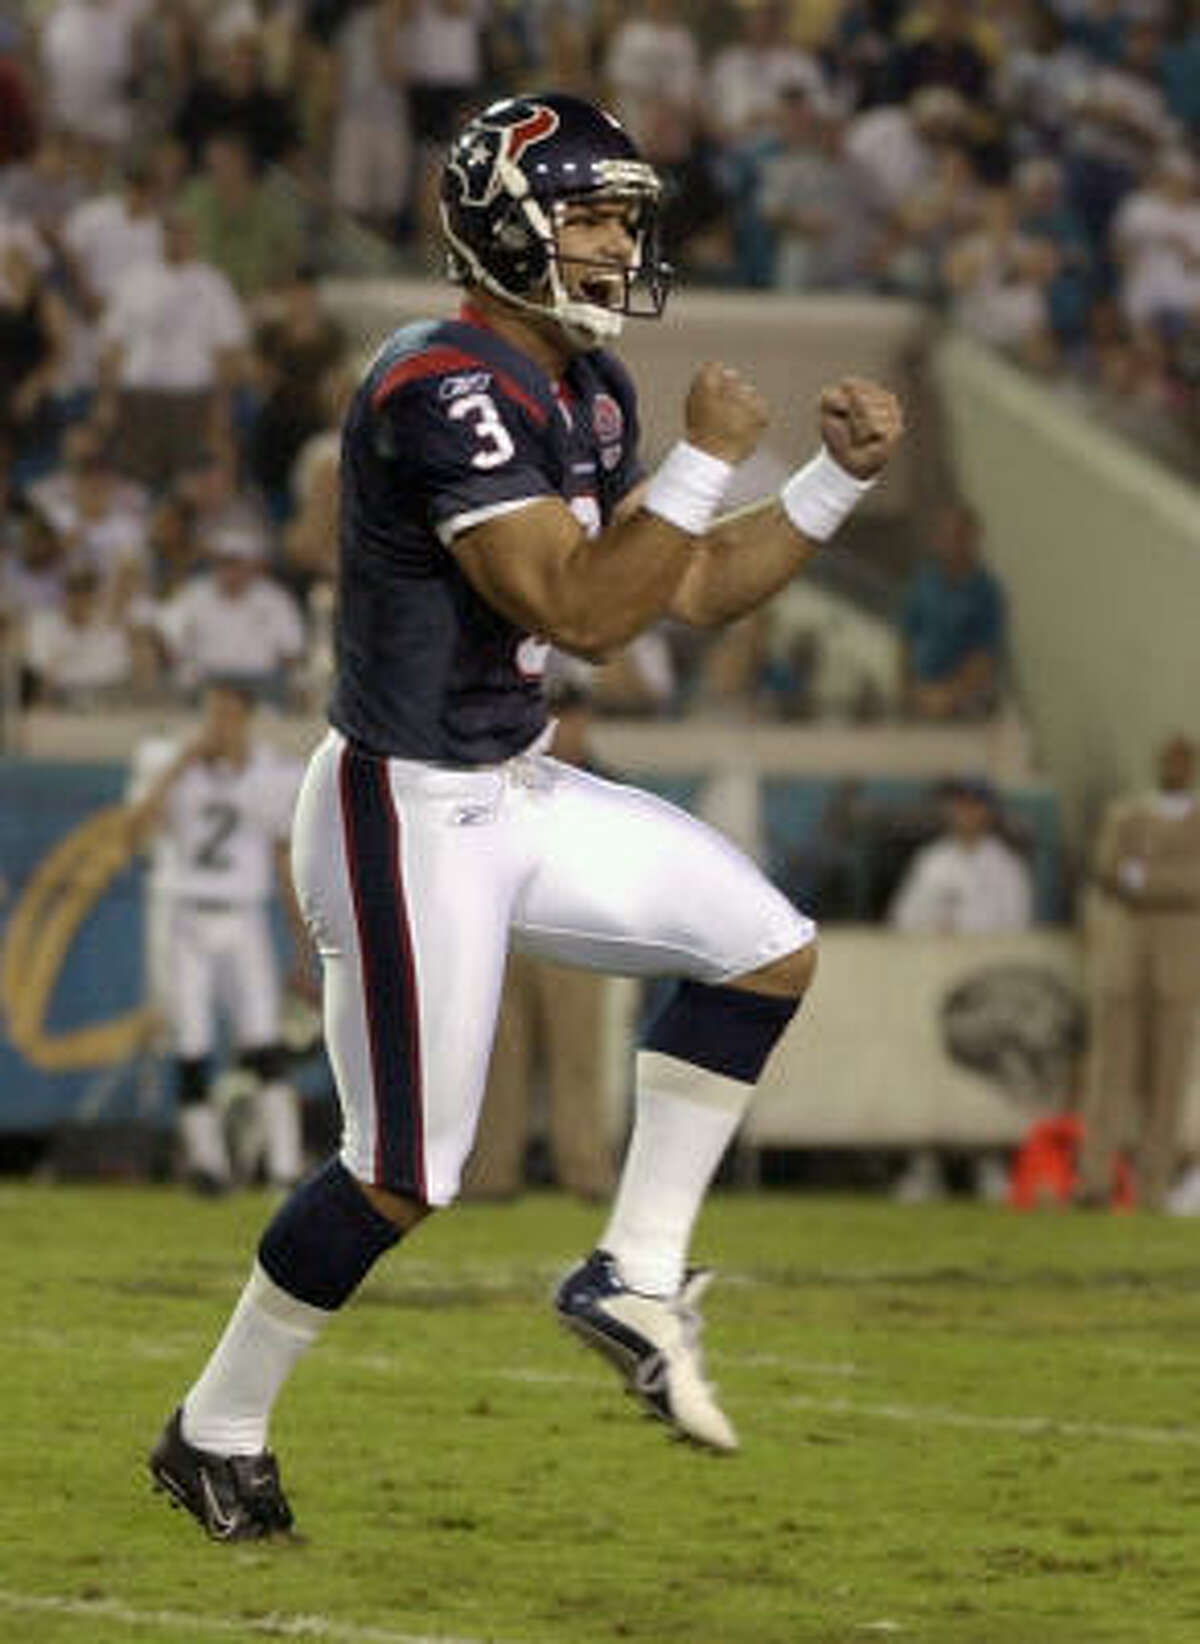 Oct. 27, 2002: Texans 21, Jaguars 19 Kris Brown kicked a 45-yard field goal with 2:16 remaining to give the Texans a 21-19 victory in the first meeting between the two teams.